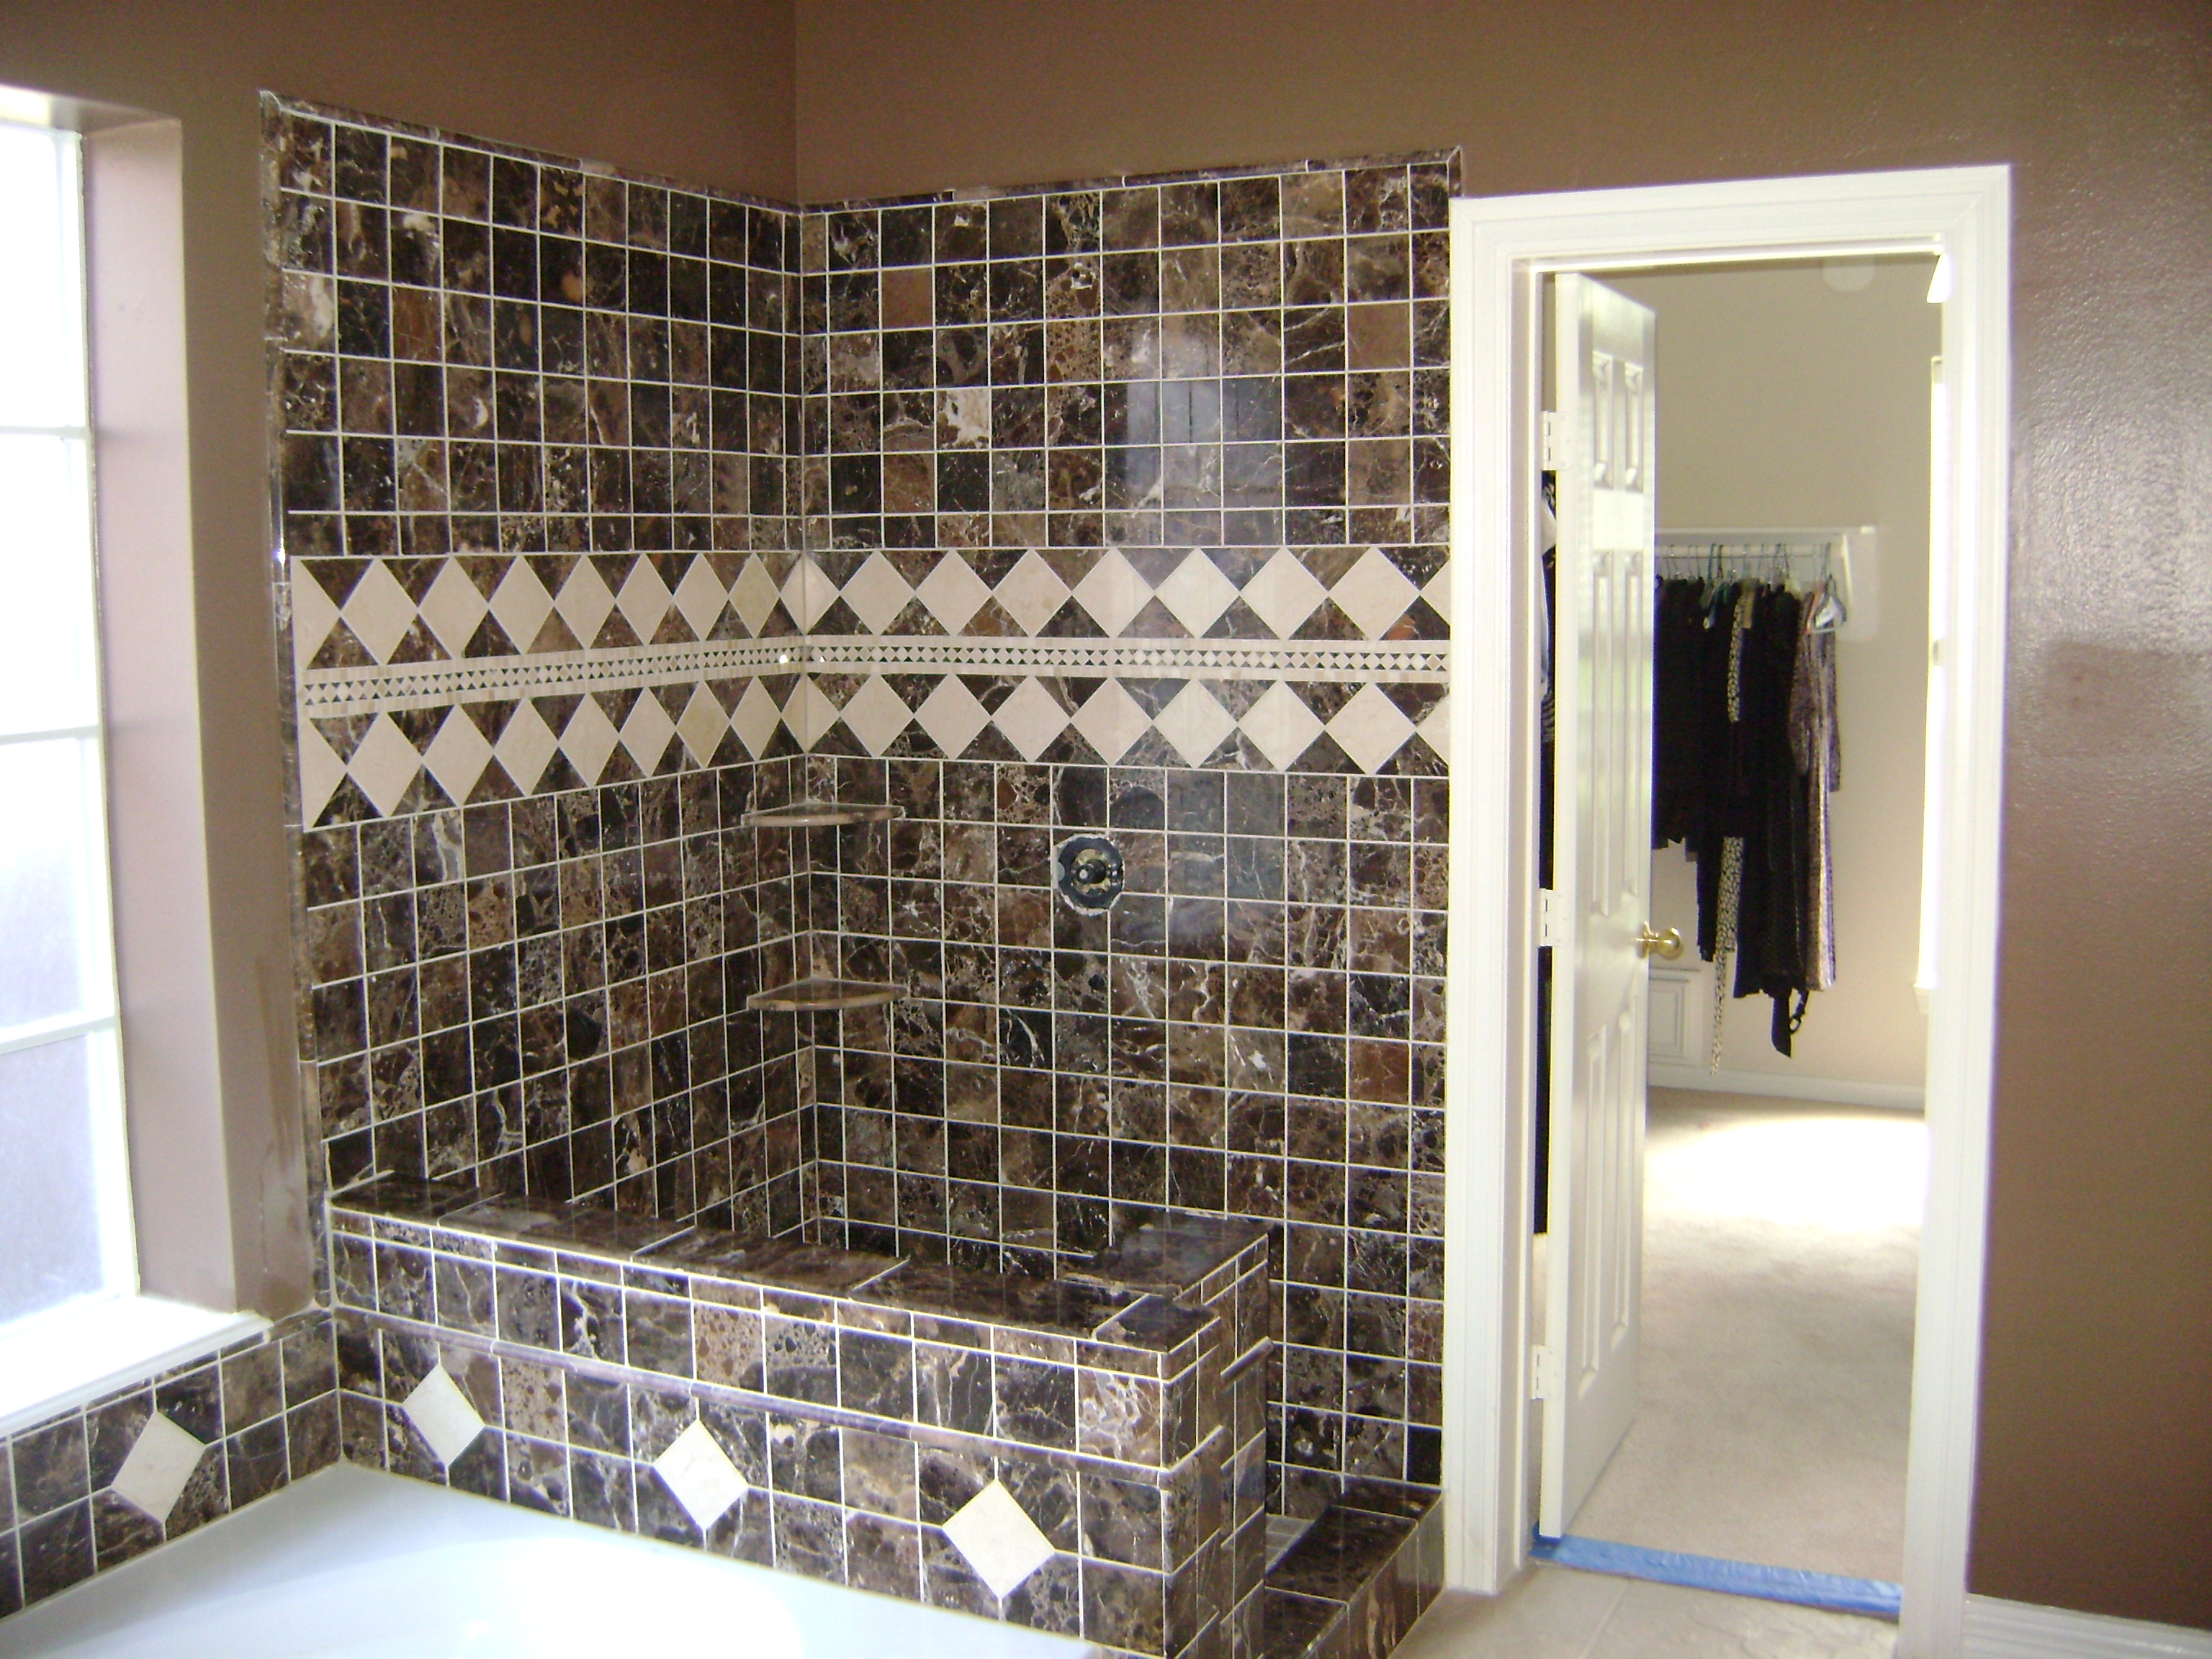 A Home Remodel Series (Part 5-Retile a Shower) | A Girl Can Do It